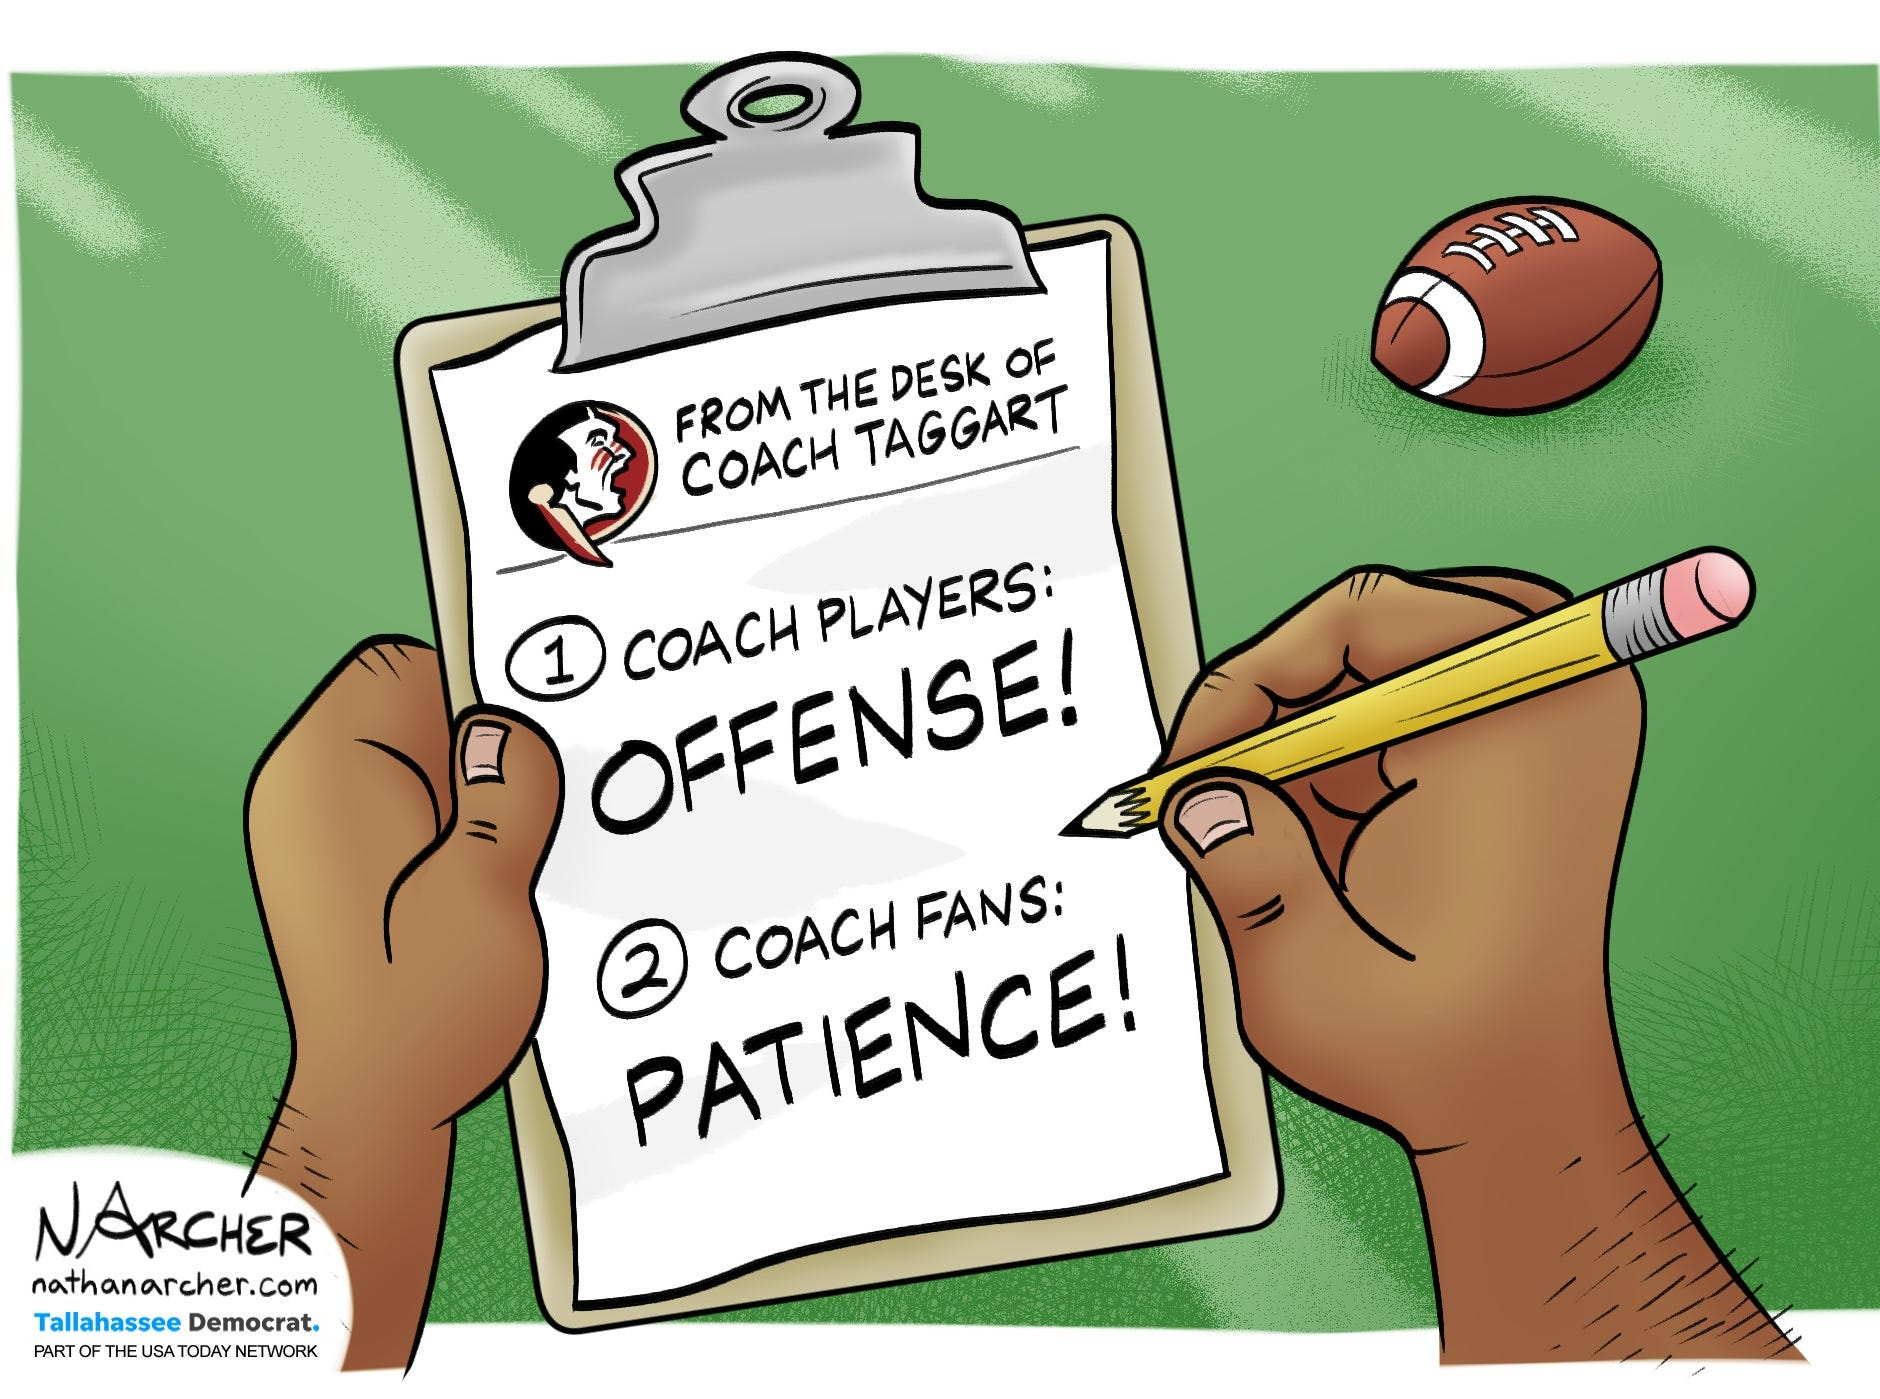 From the desk of Coach Taggart